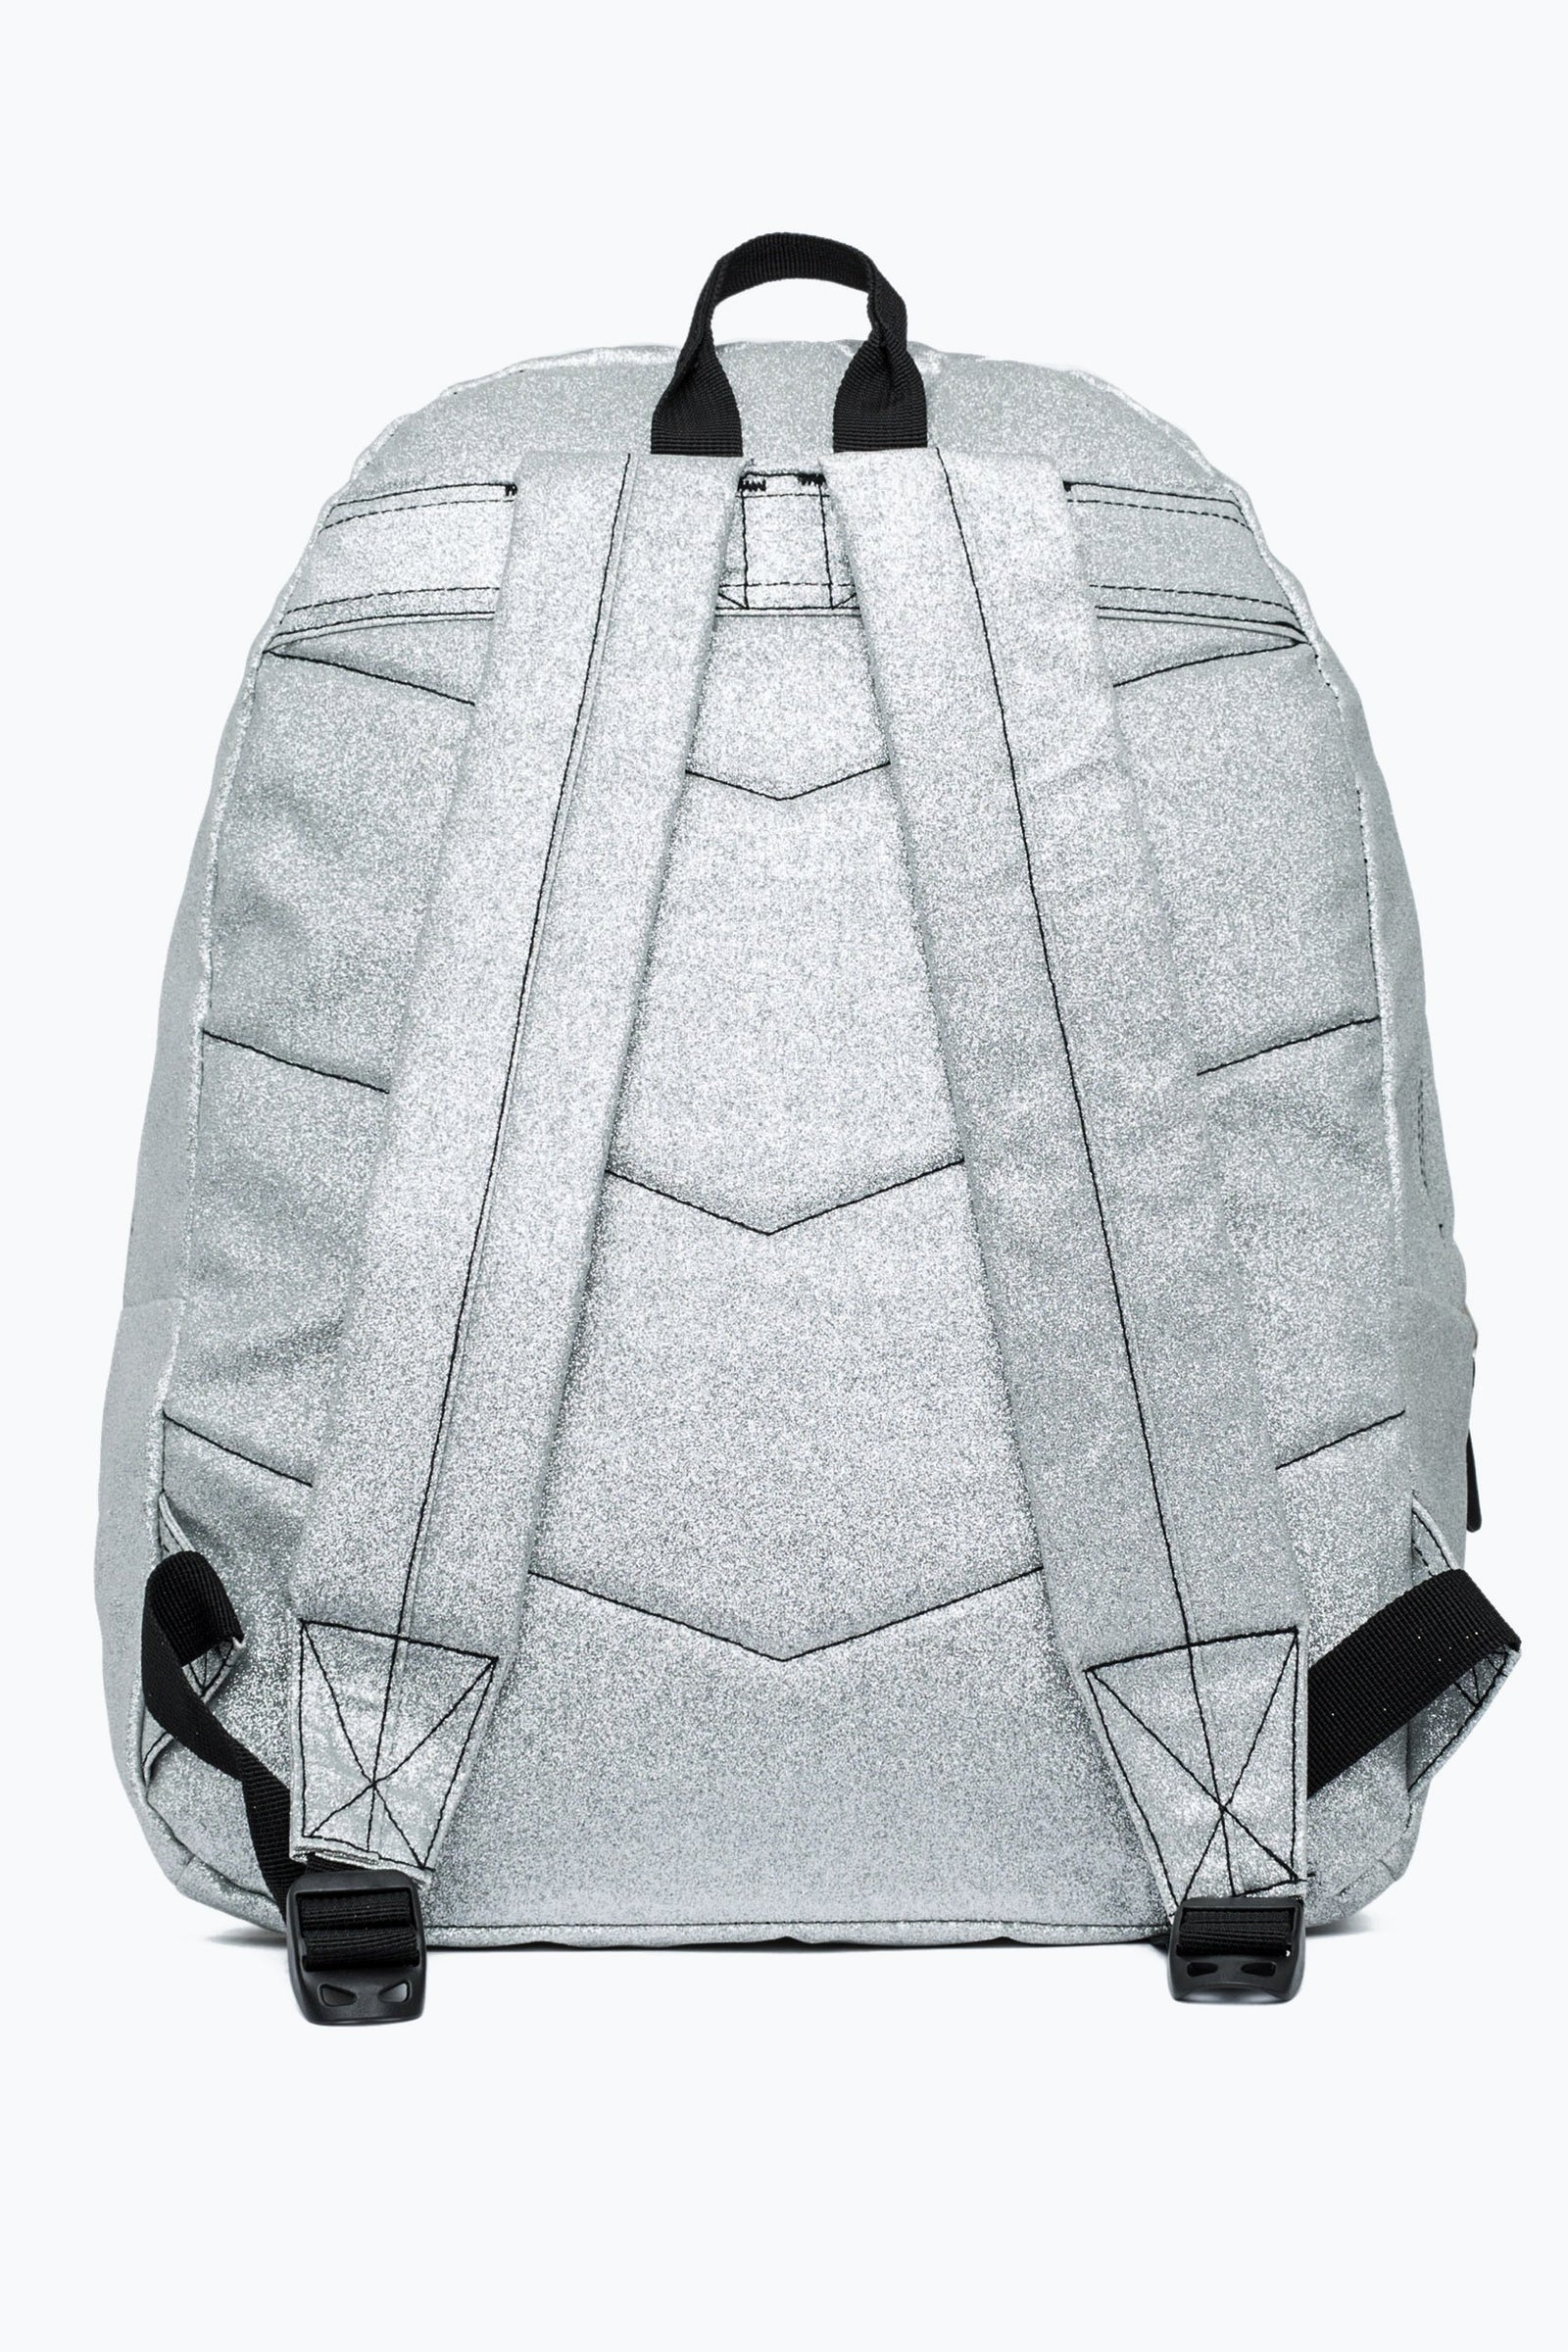 2dbceb4ff4e5 Hype Silver Glitter Backpack  Hype Silver Glitter Backpack ...